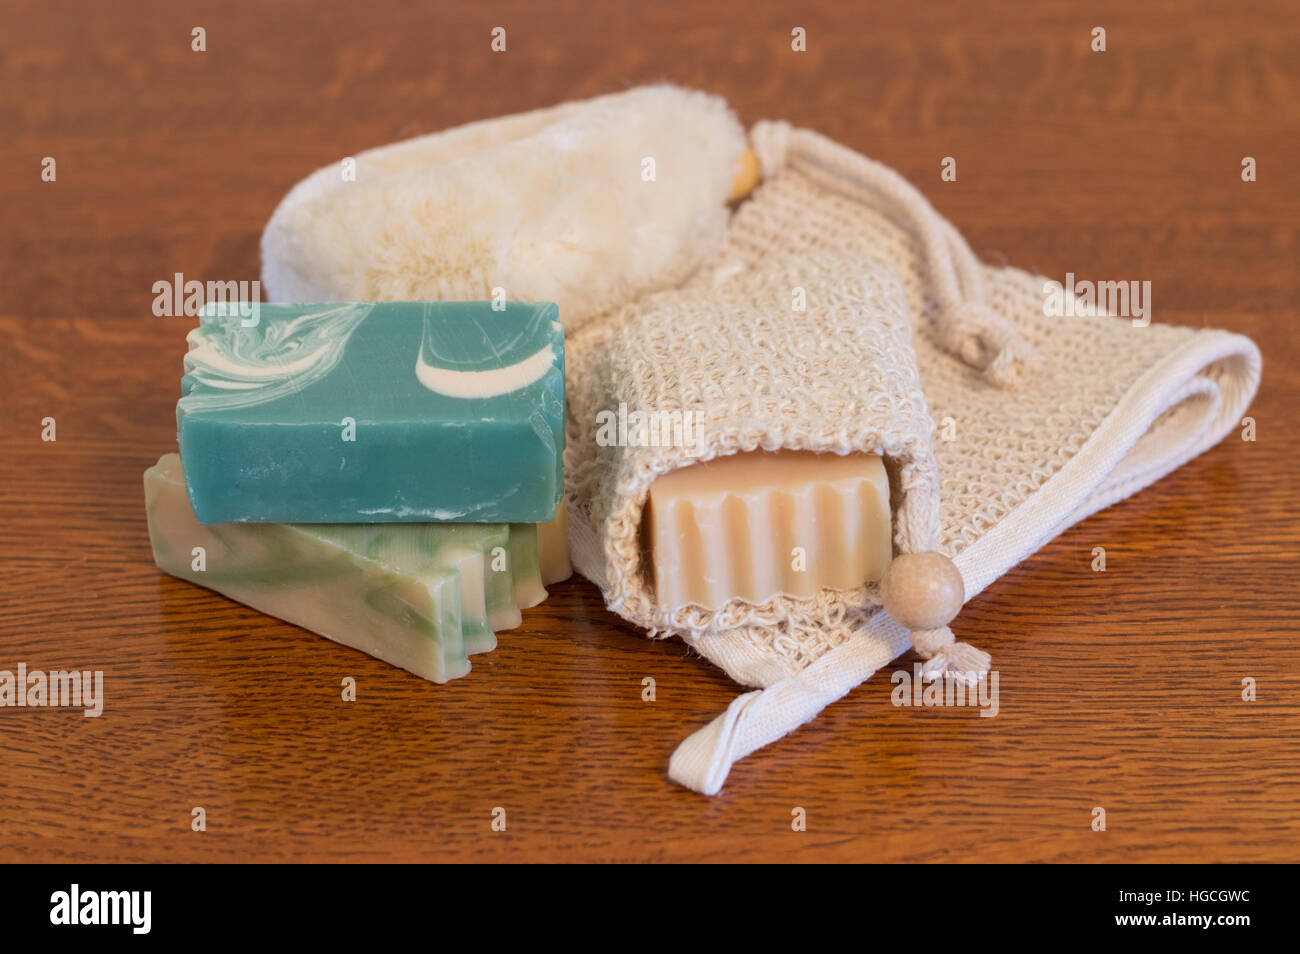 Close Up Of Three Bars Of Goats Milk Soap One In Ramie Soap Holder Stock Photo Alamy